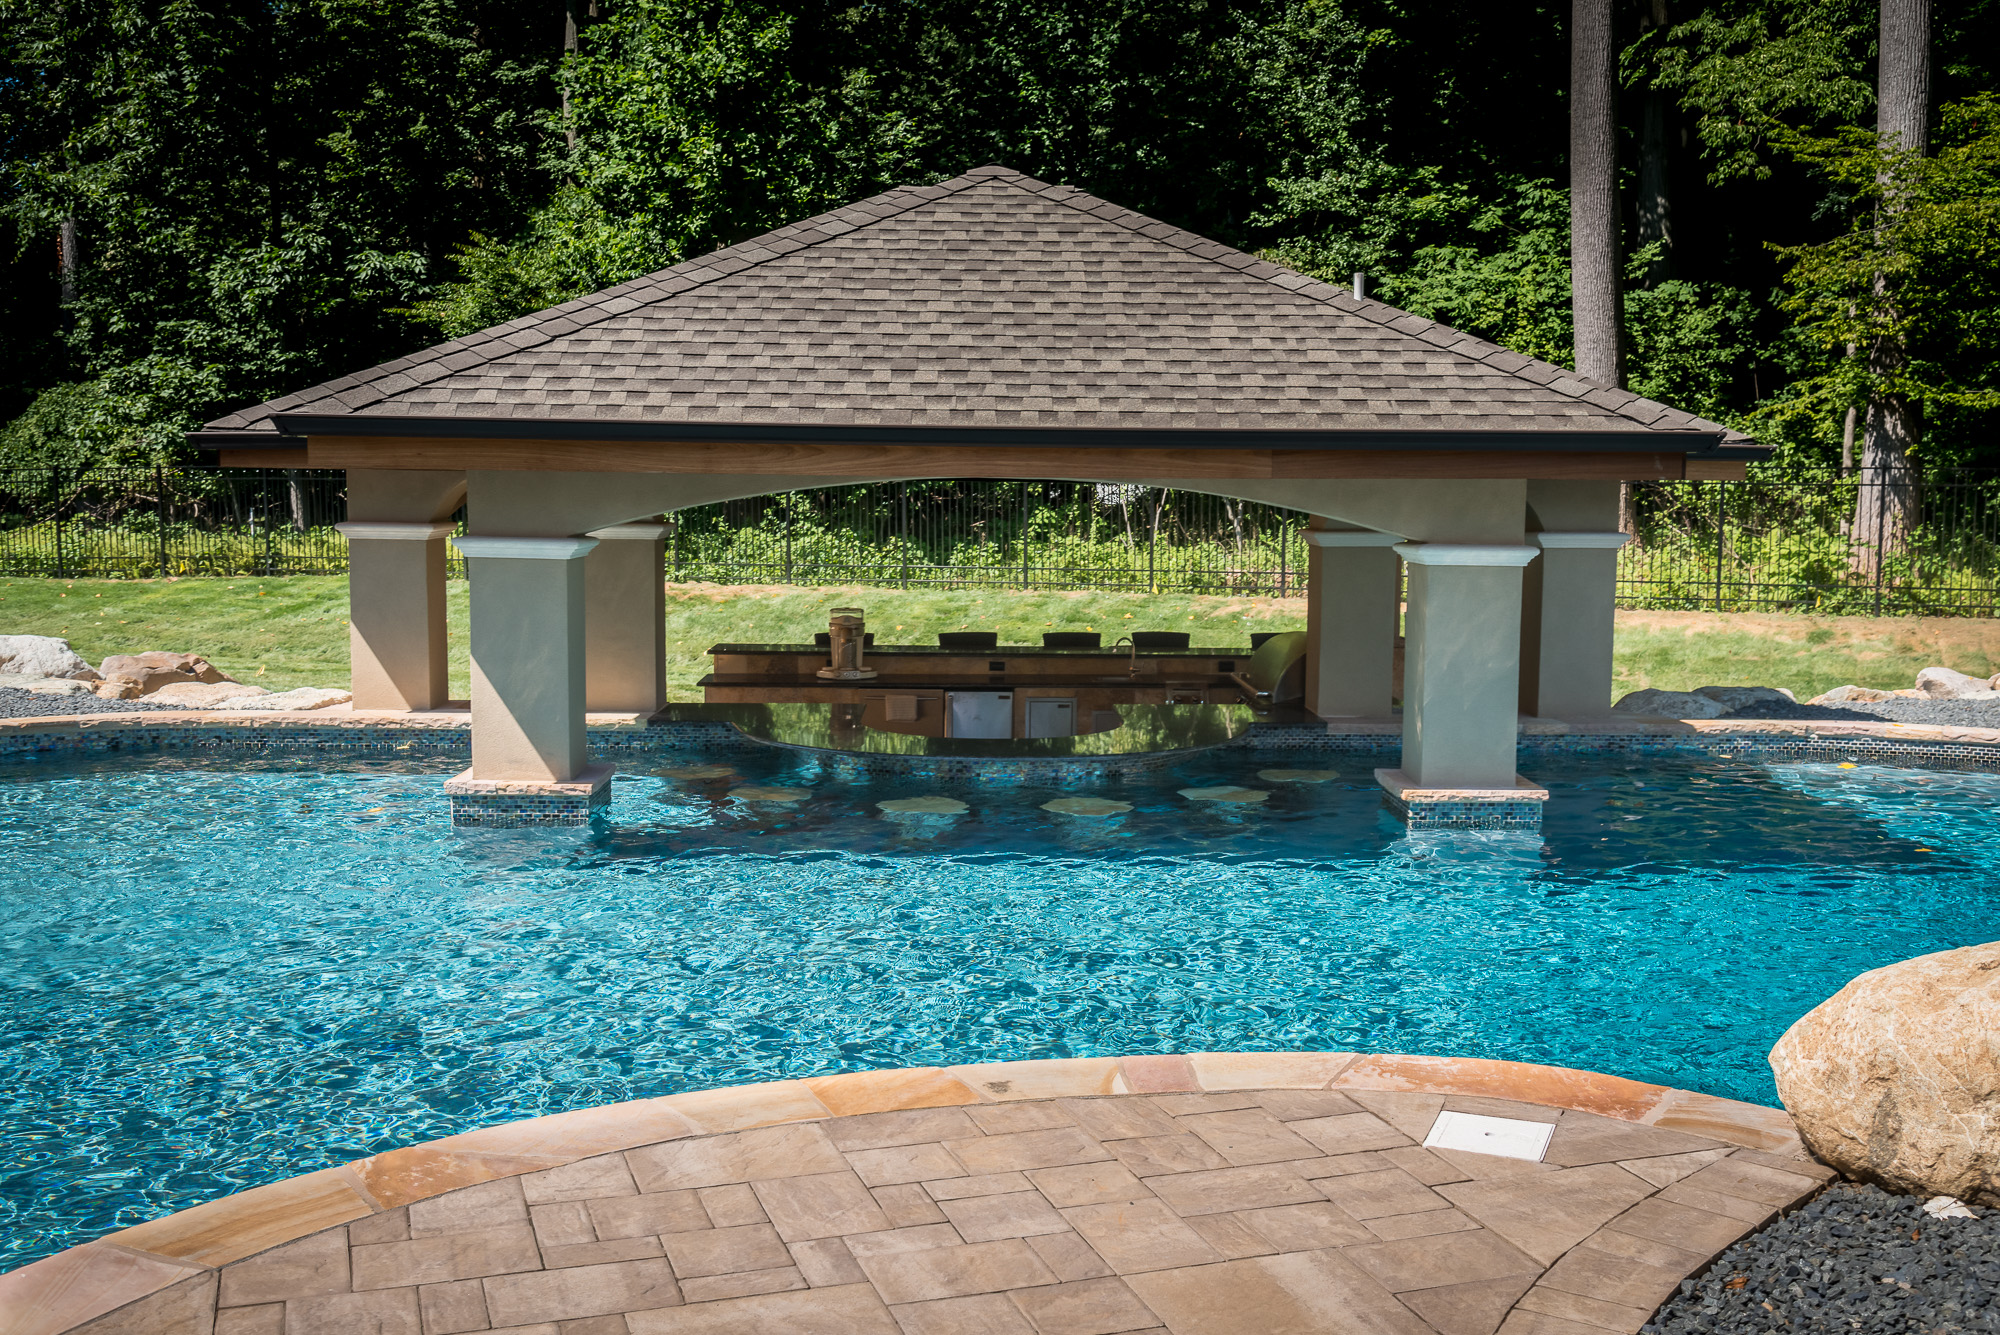 Holmdel nj custom inground swimming pool design for Custom inground swimming pools